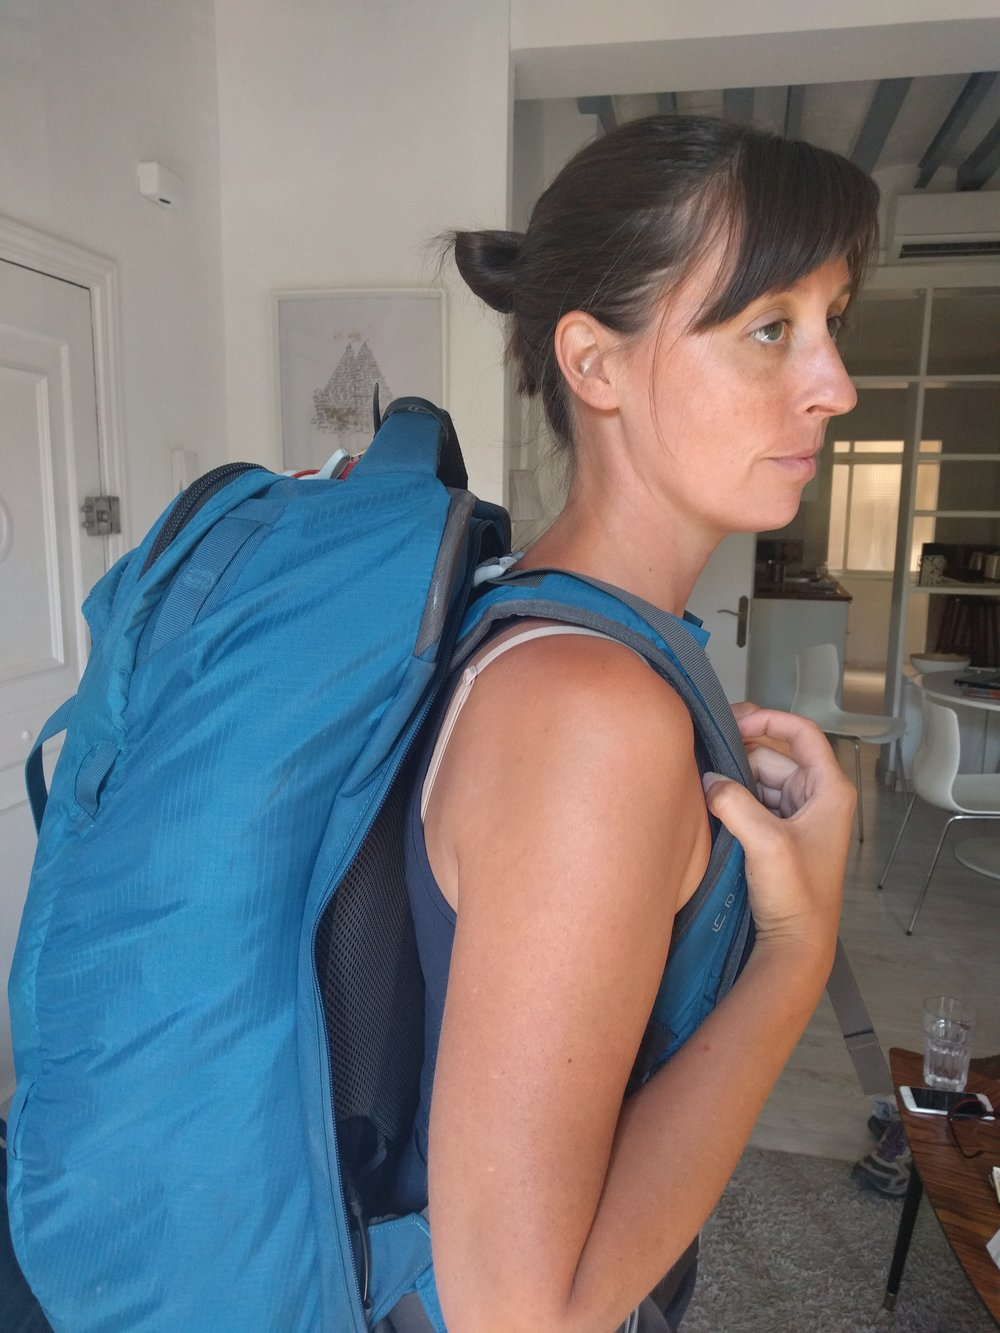 The Osprey Farpoint 55 looks much more like a traditional travel backpack.